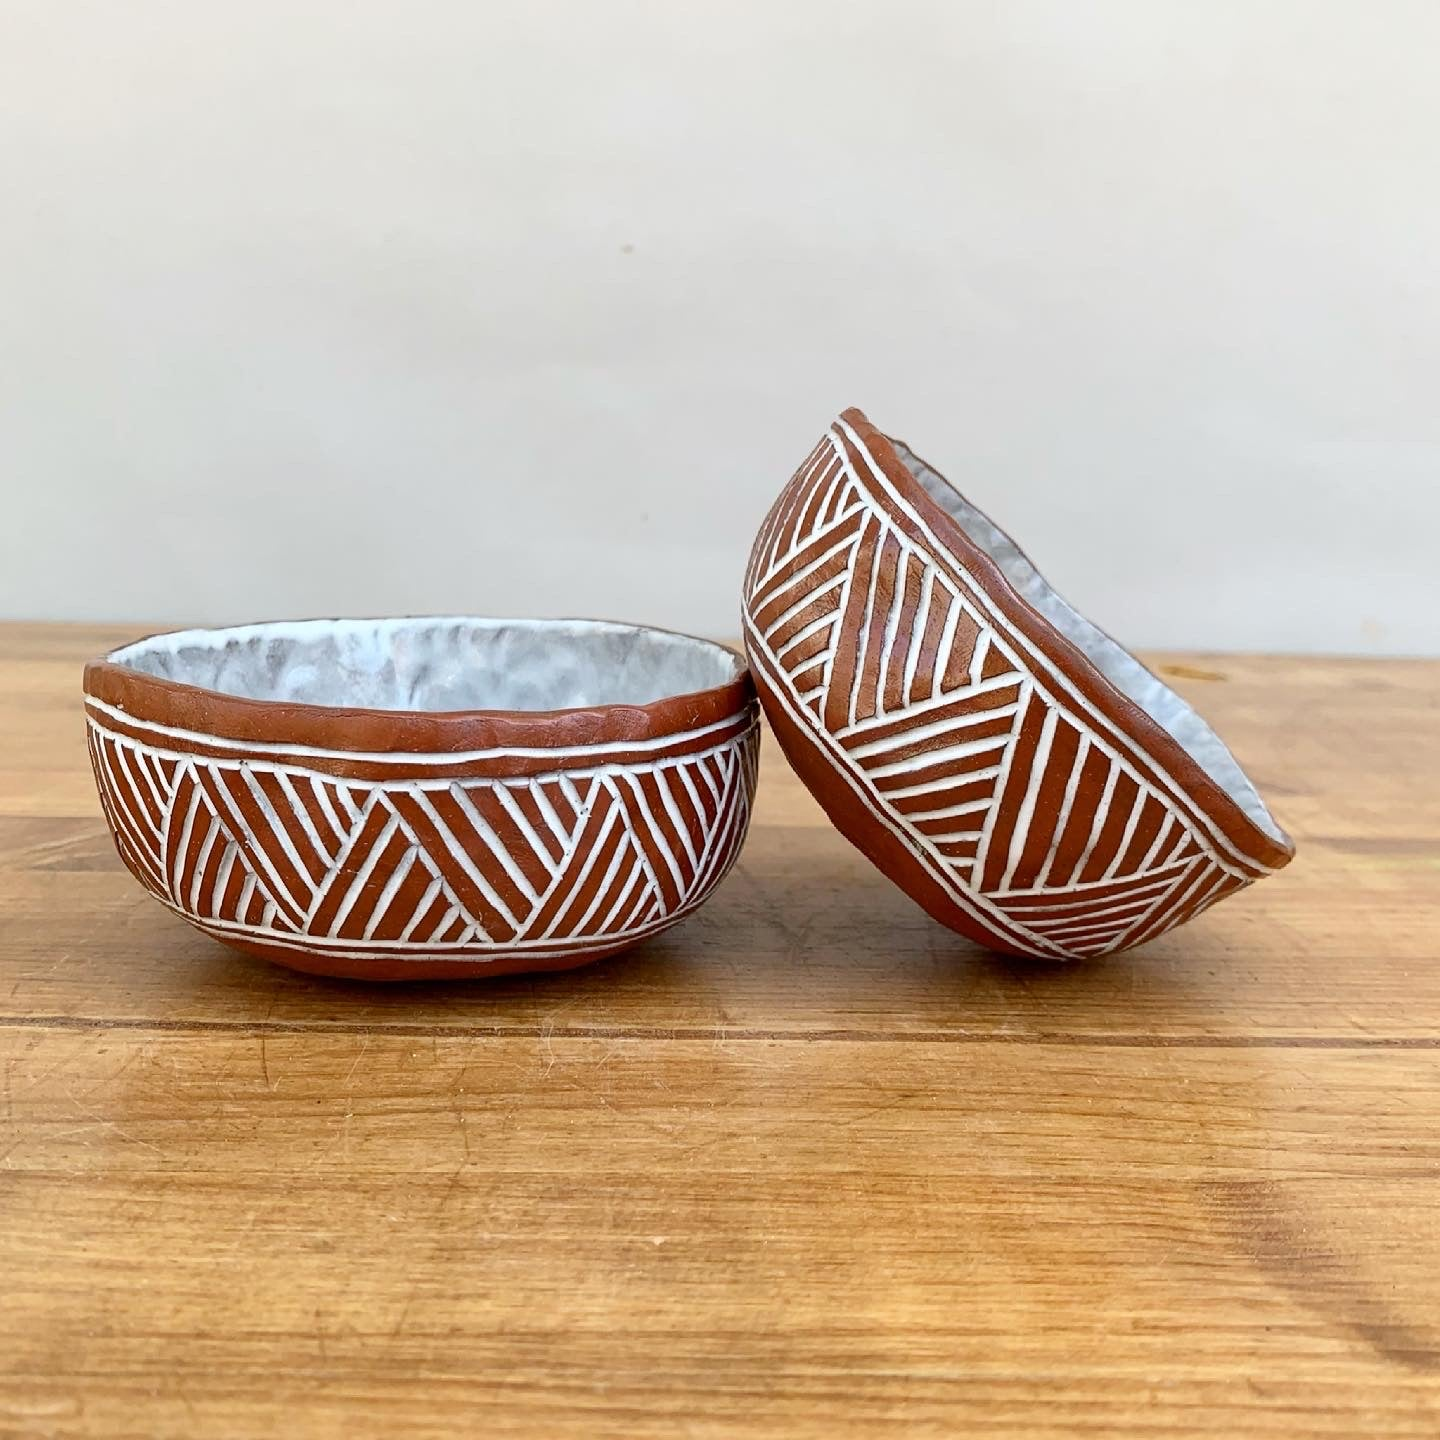 Pair of Small Pinched Bowls